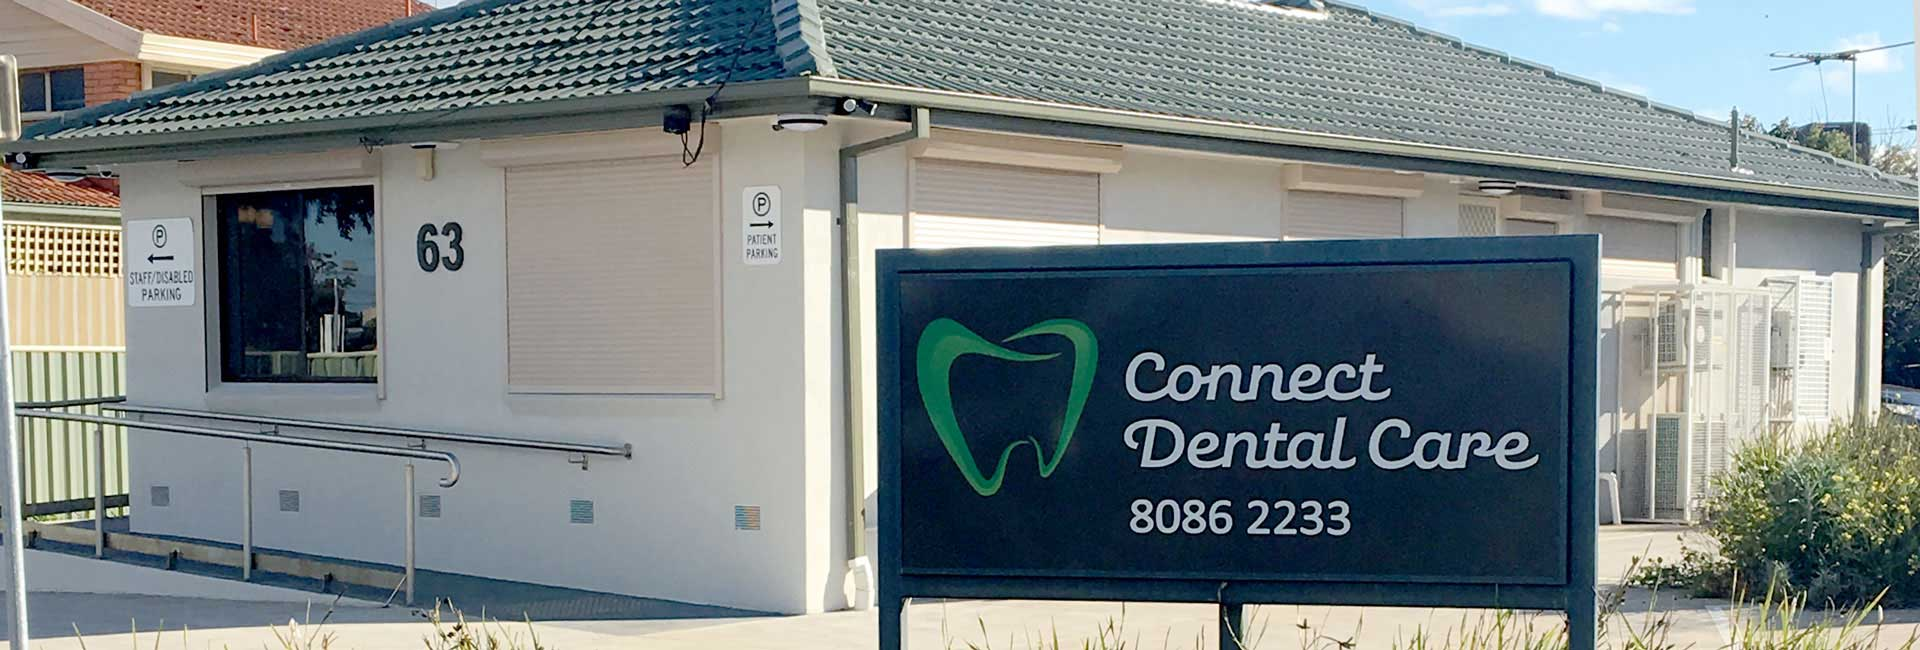 Connect Dental Practice Image